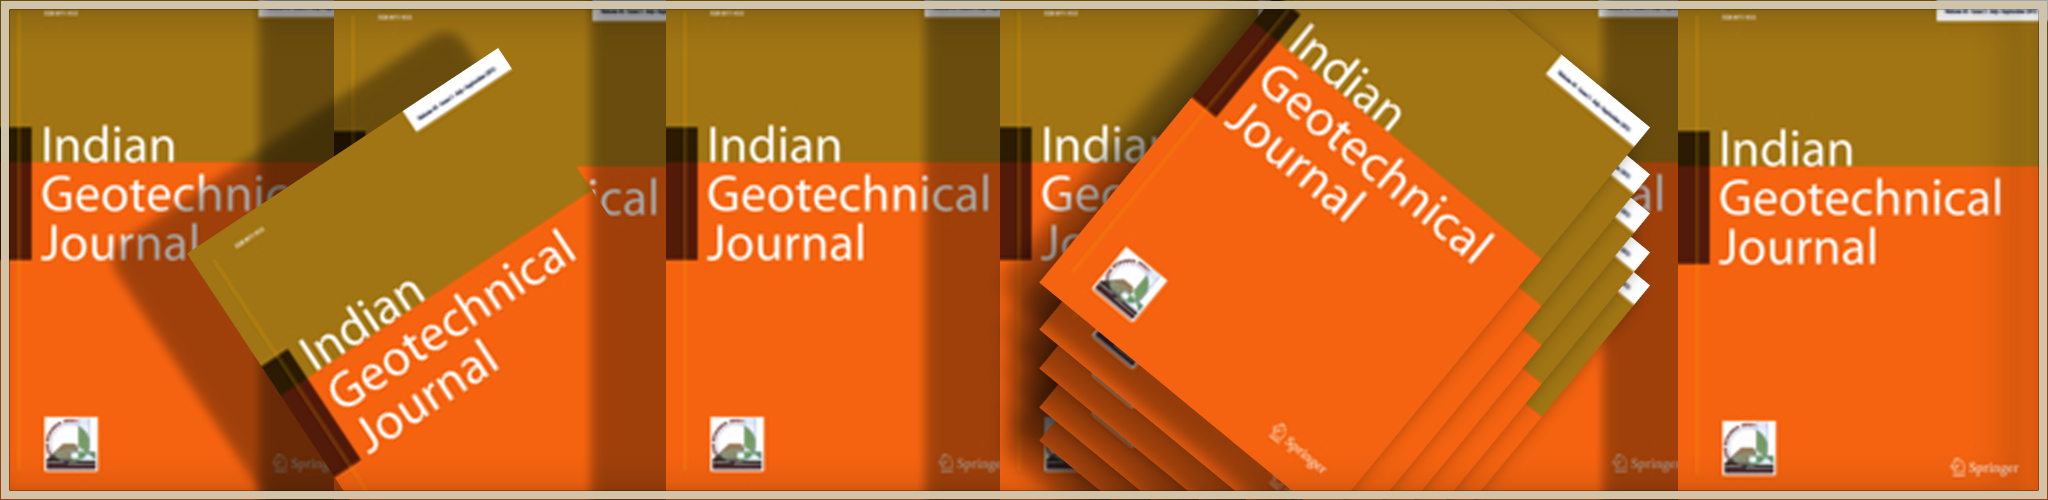 Indain Geotechnical Society Journal